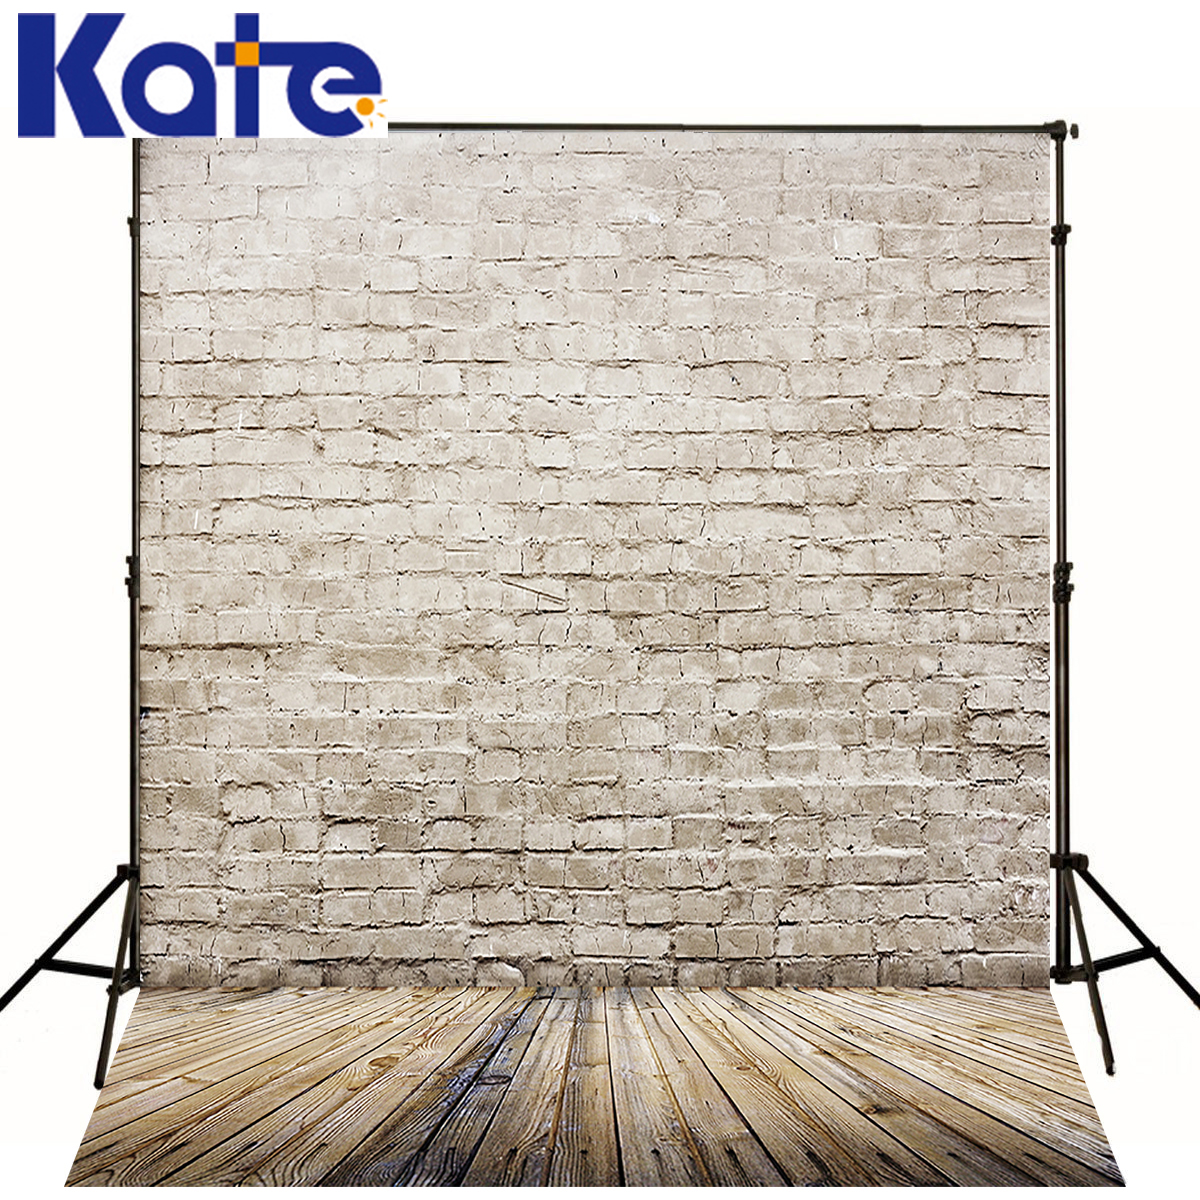 Kate Newborn Baby Backdrops Photo Retro White Brick Wall Fond Studio - Camera and Photo - Photo 1